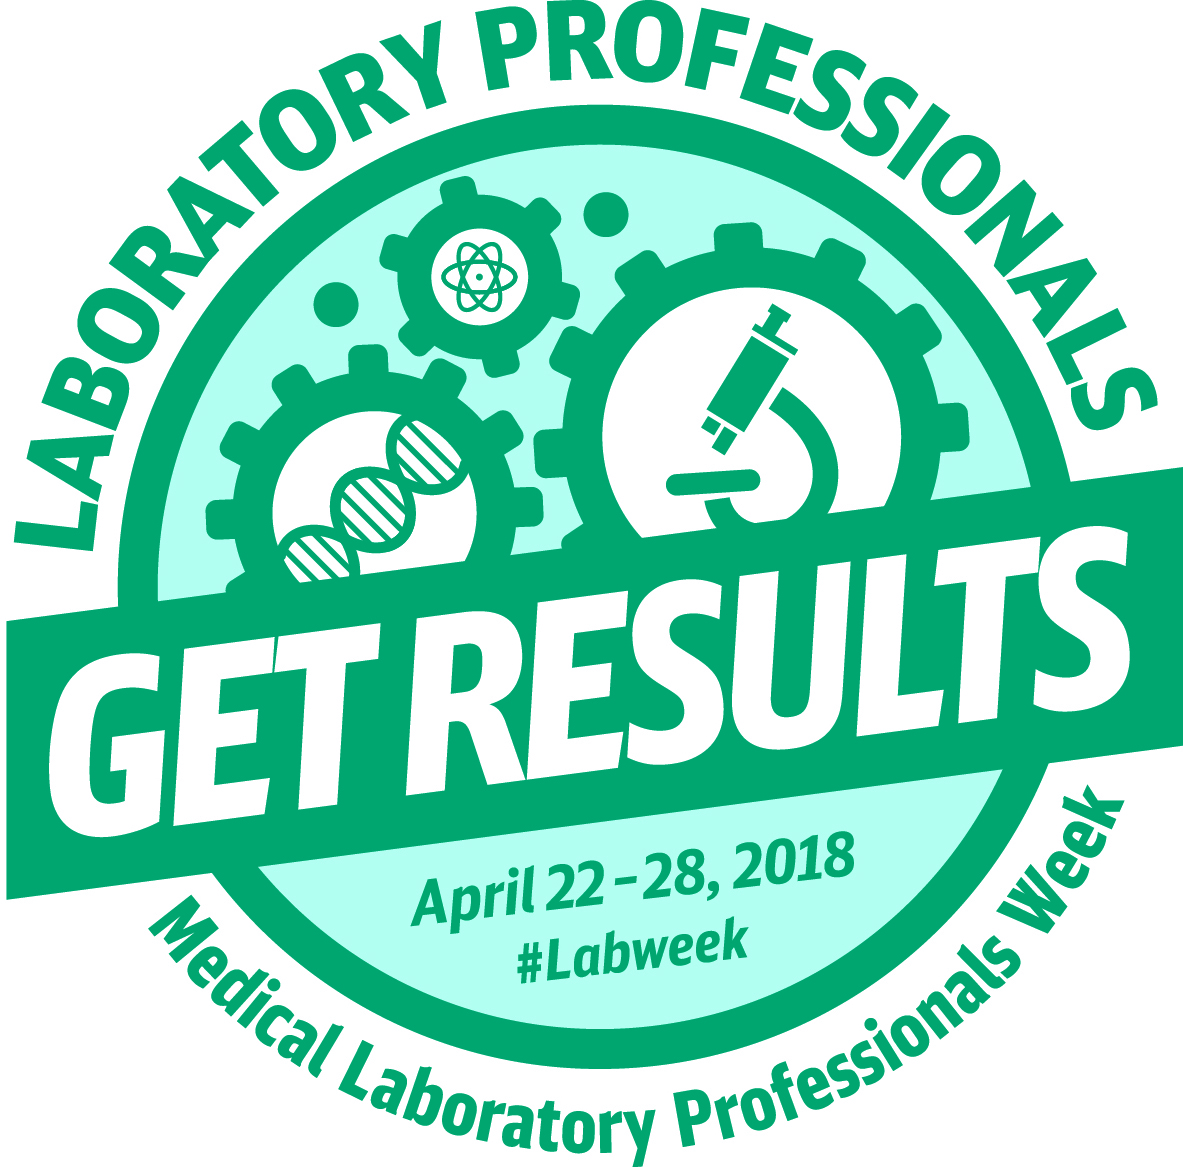 National Laboratory Professionals Week - April 22-28, 2018 |  Morristown-Hamblen Healthcare System